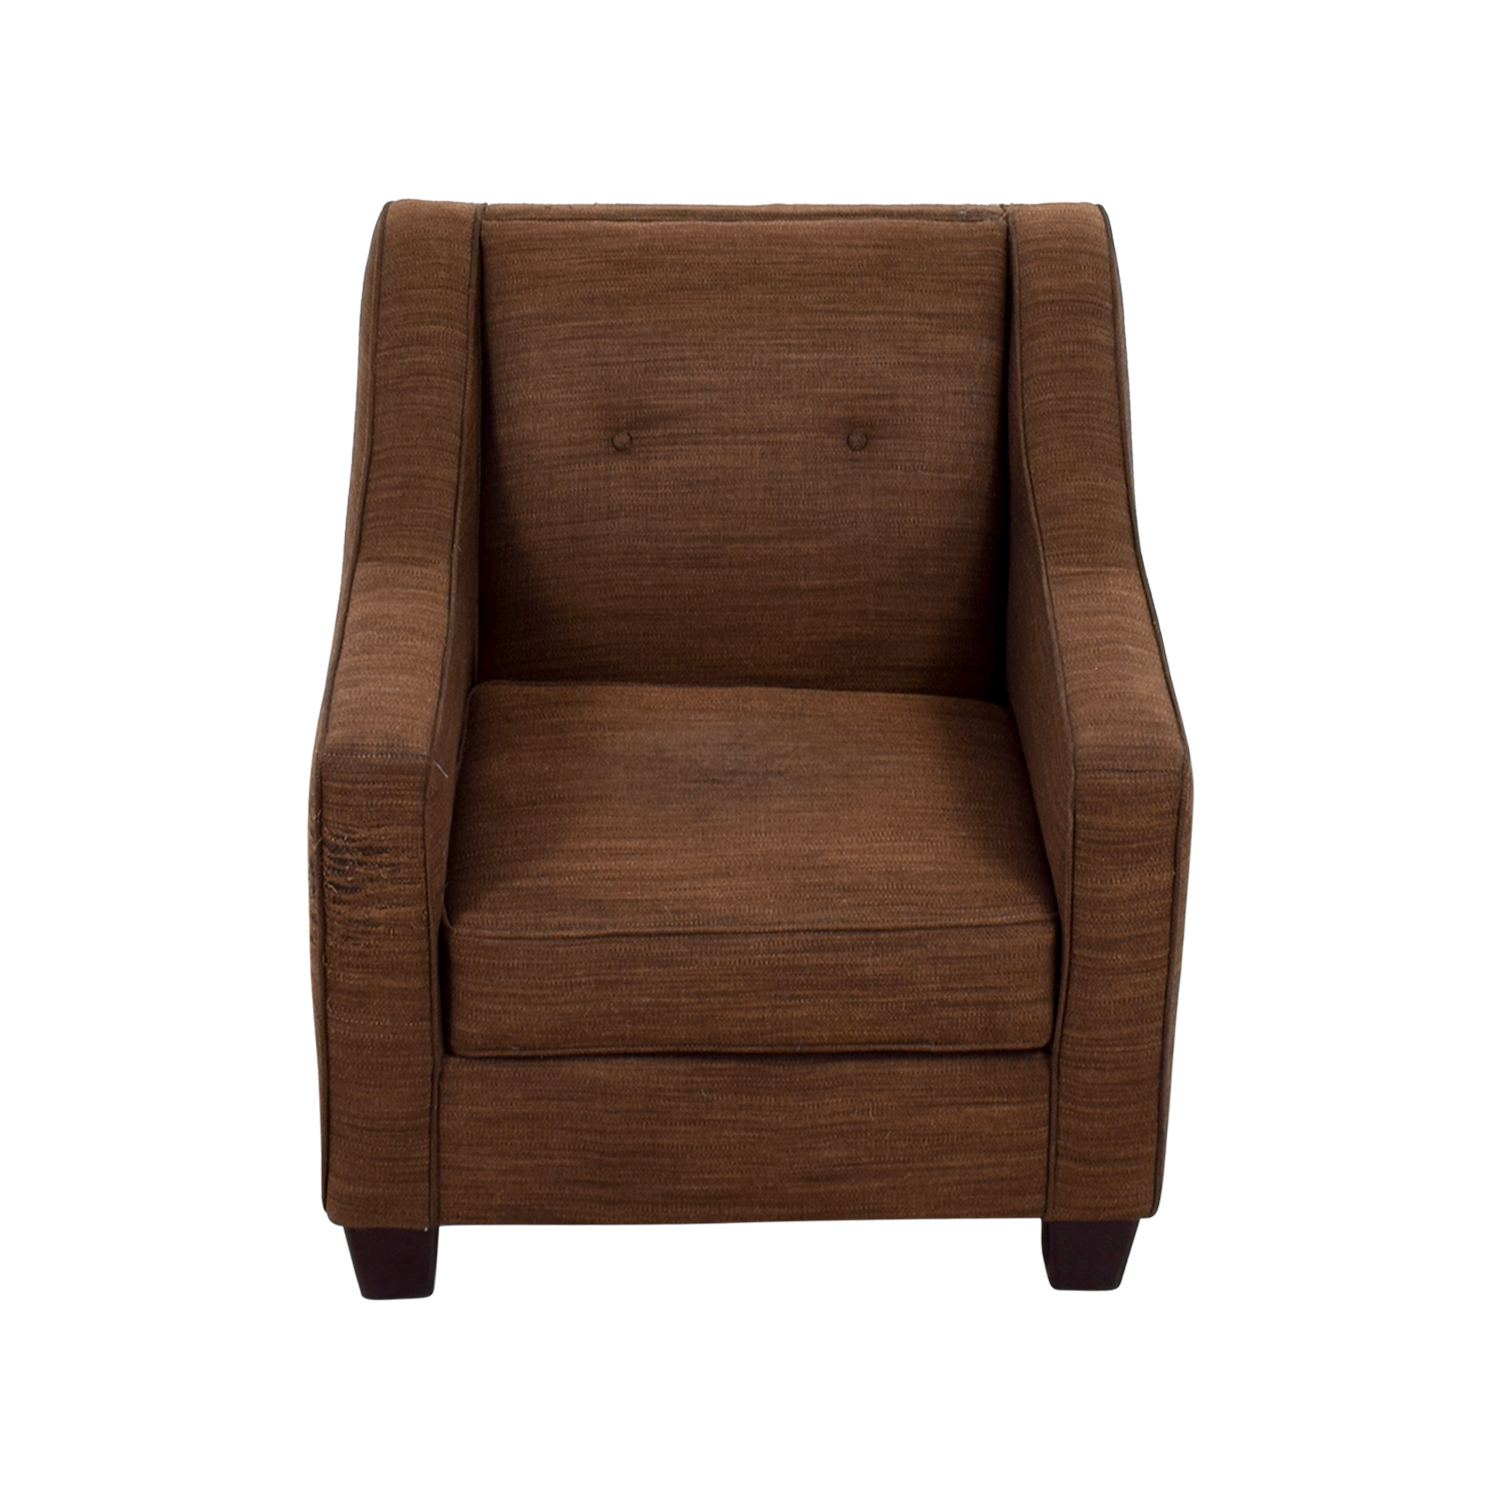 Large Brown Chair used